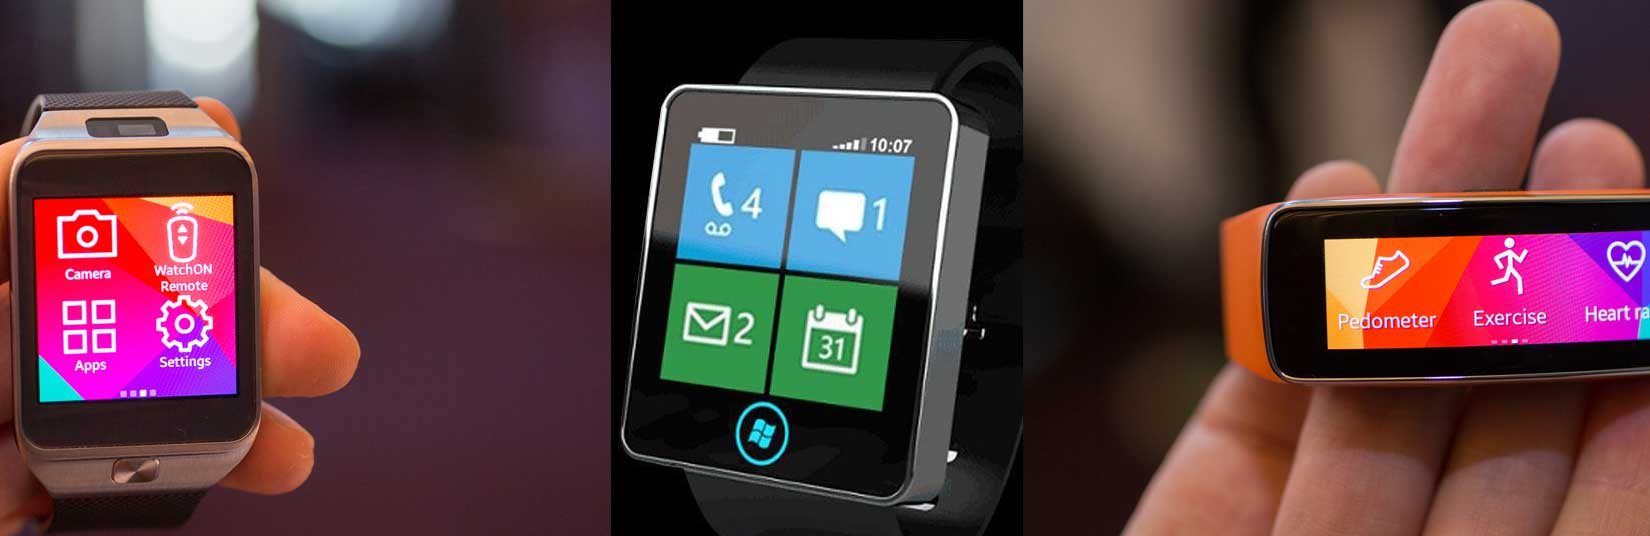 Cross Platform Fitness Band: Microsoft's Debut In Wearable ...